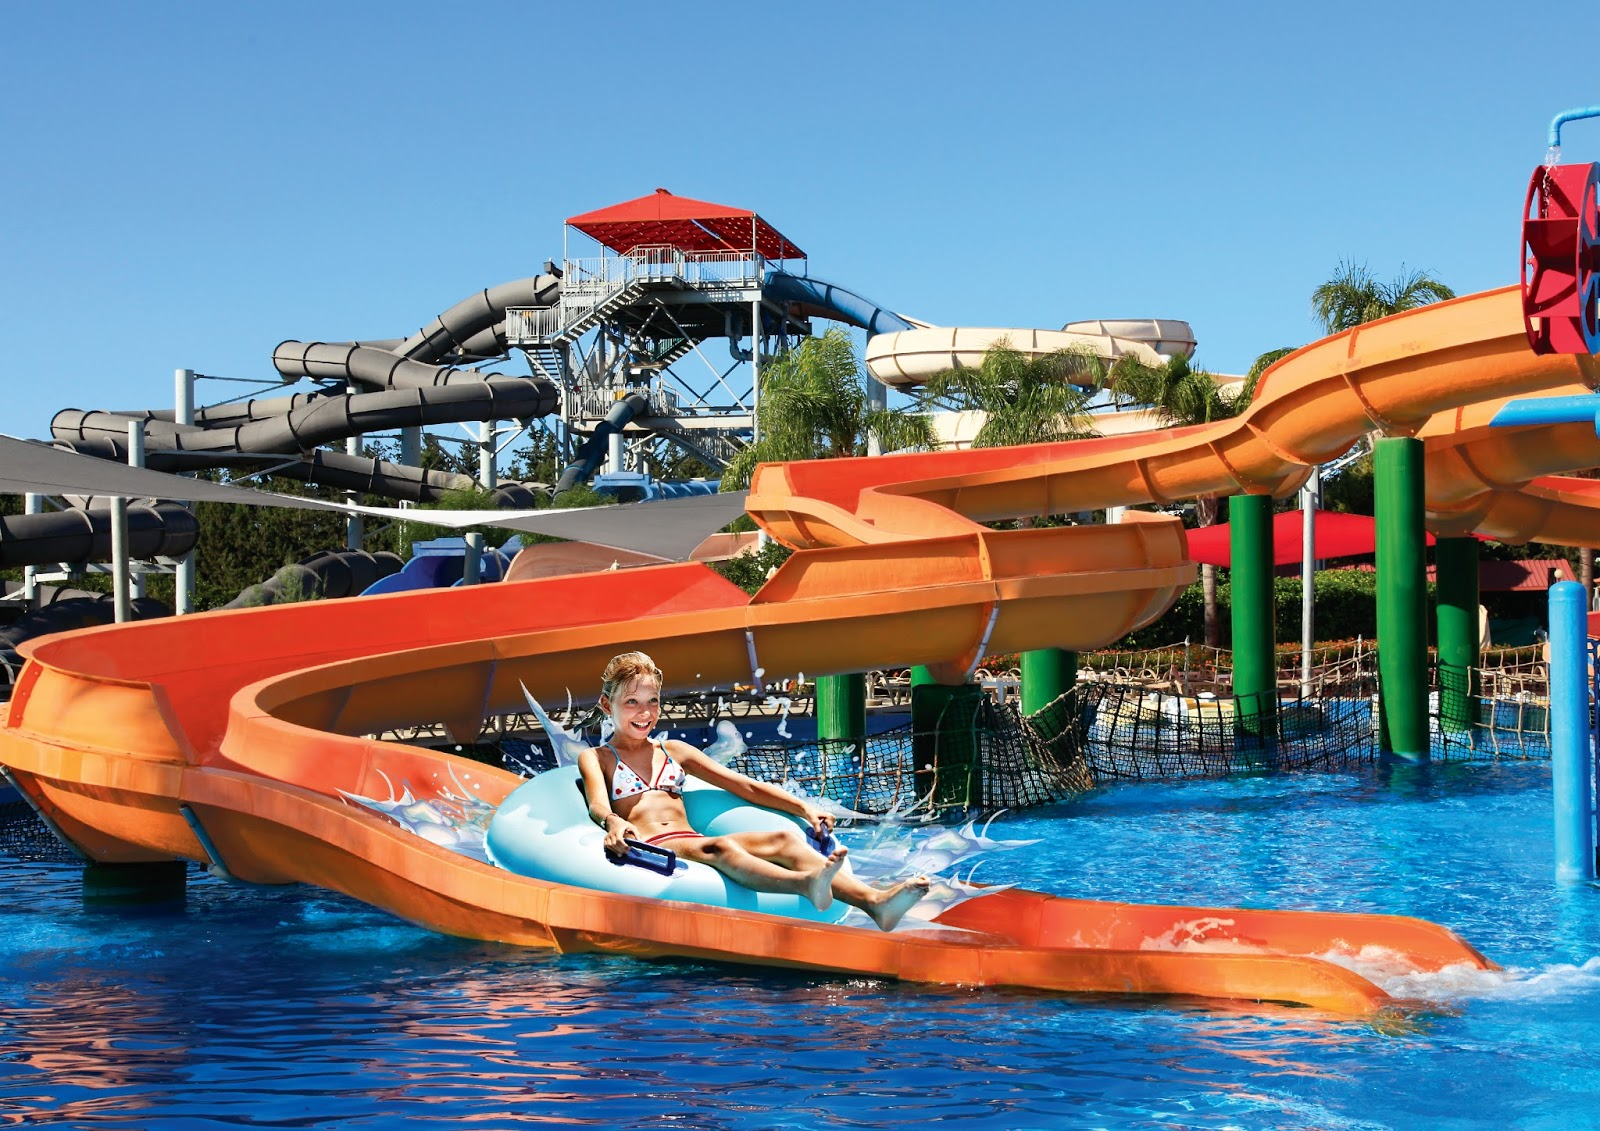 Forget the After 2:00 Pass for Water... - Disney's Typhoon Lagoon Water Park